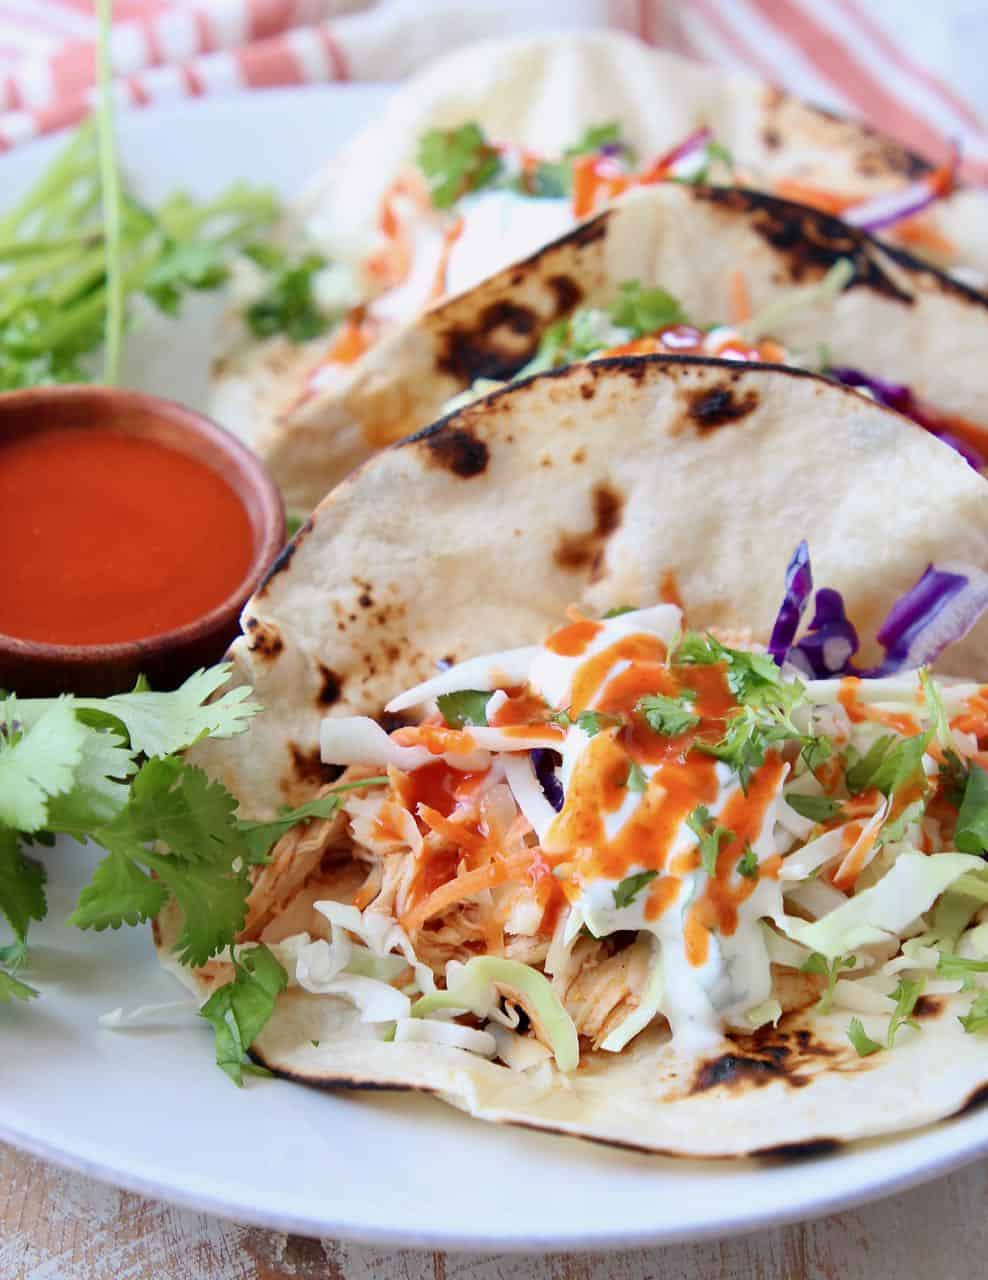 Tacos on plate with slaw and buffalo sauce